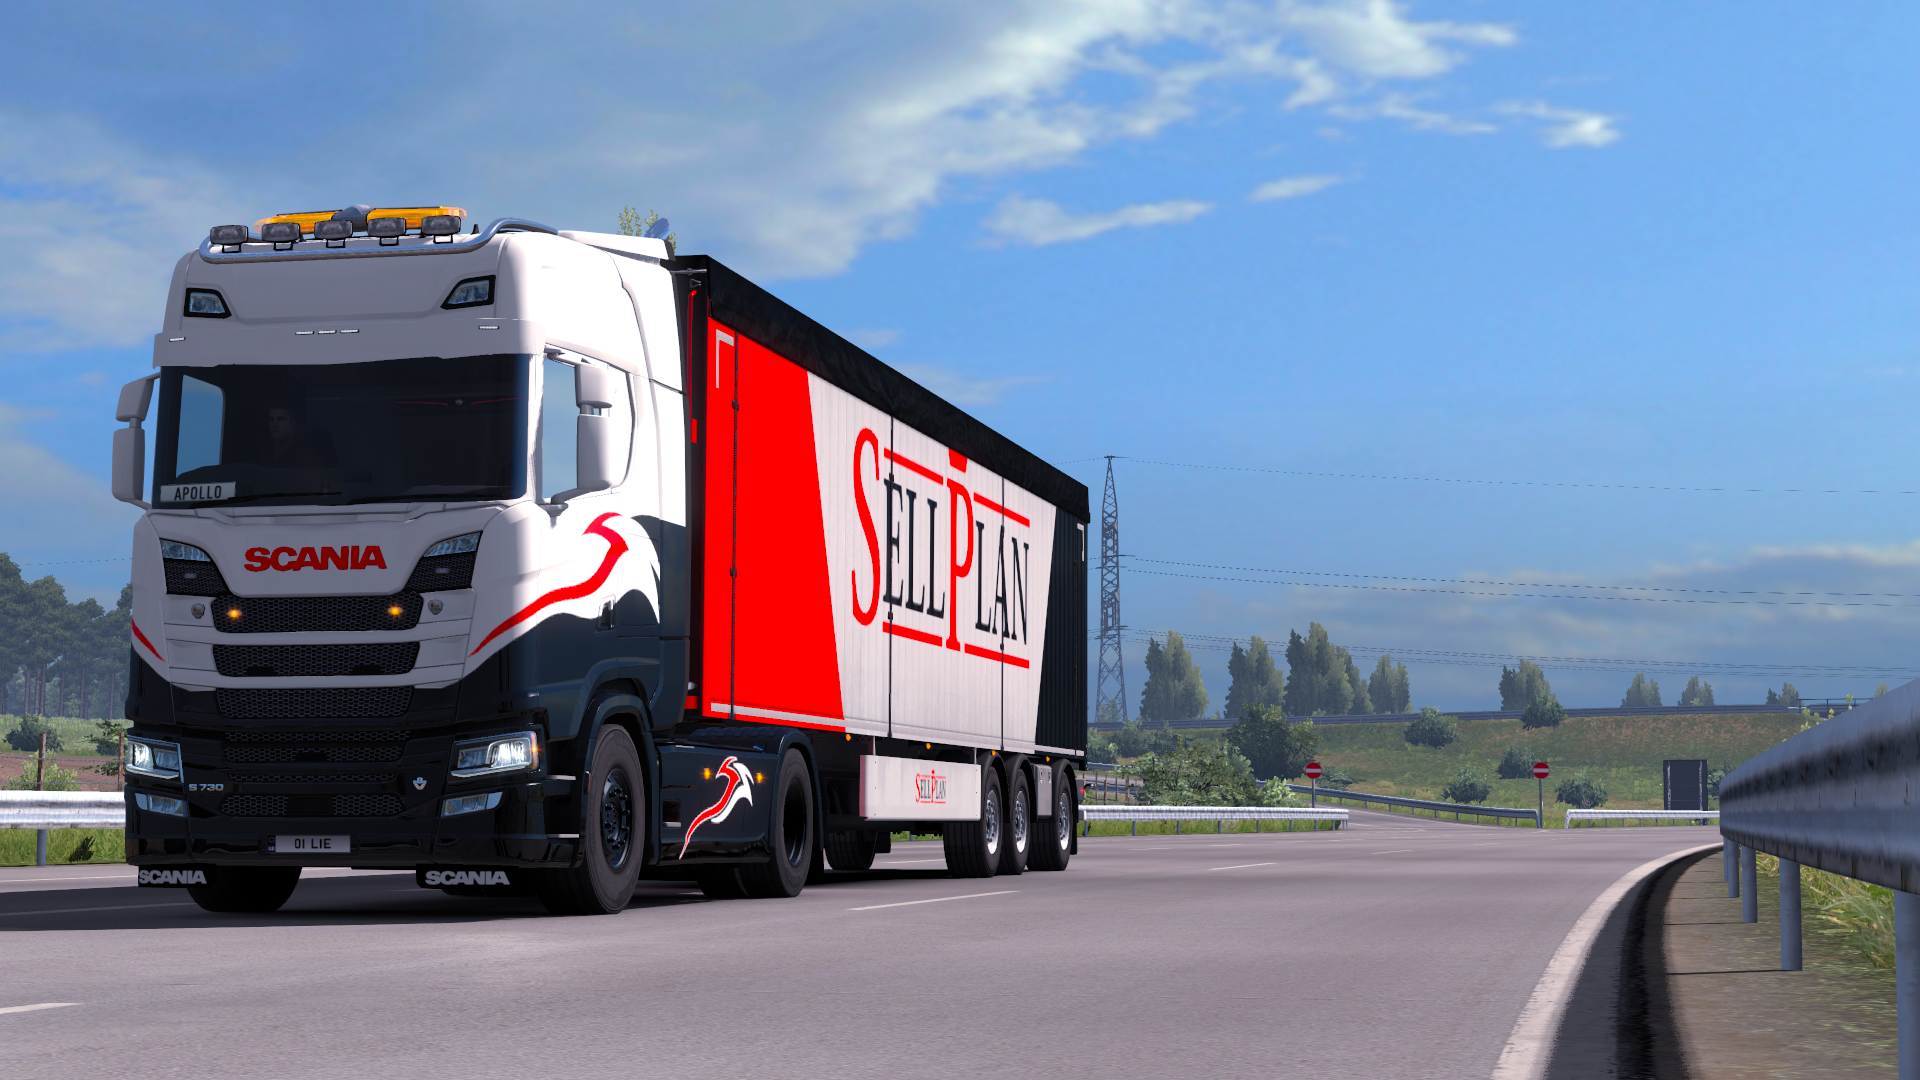 ets2_20181031_171103_00.png